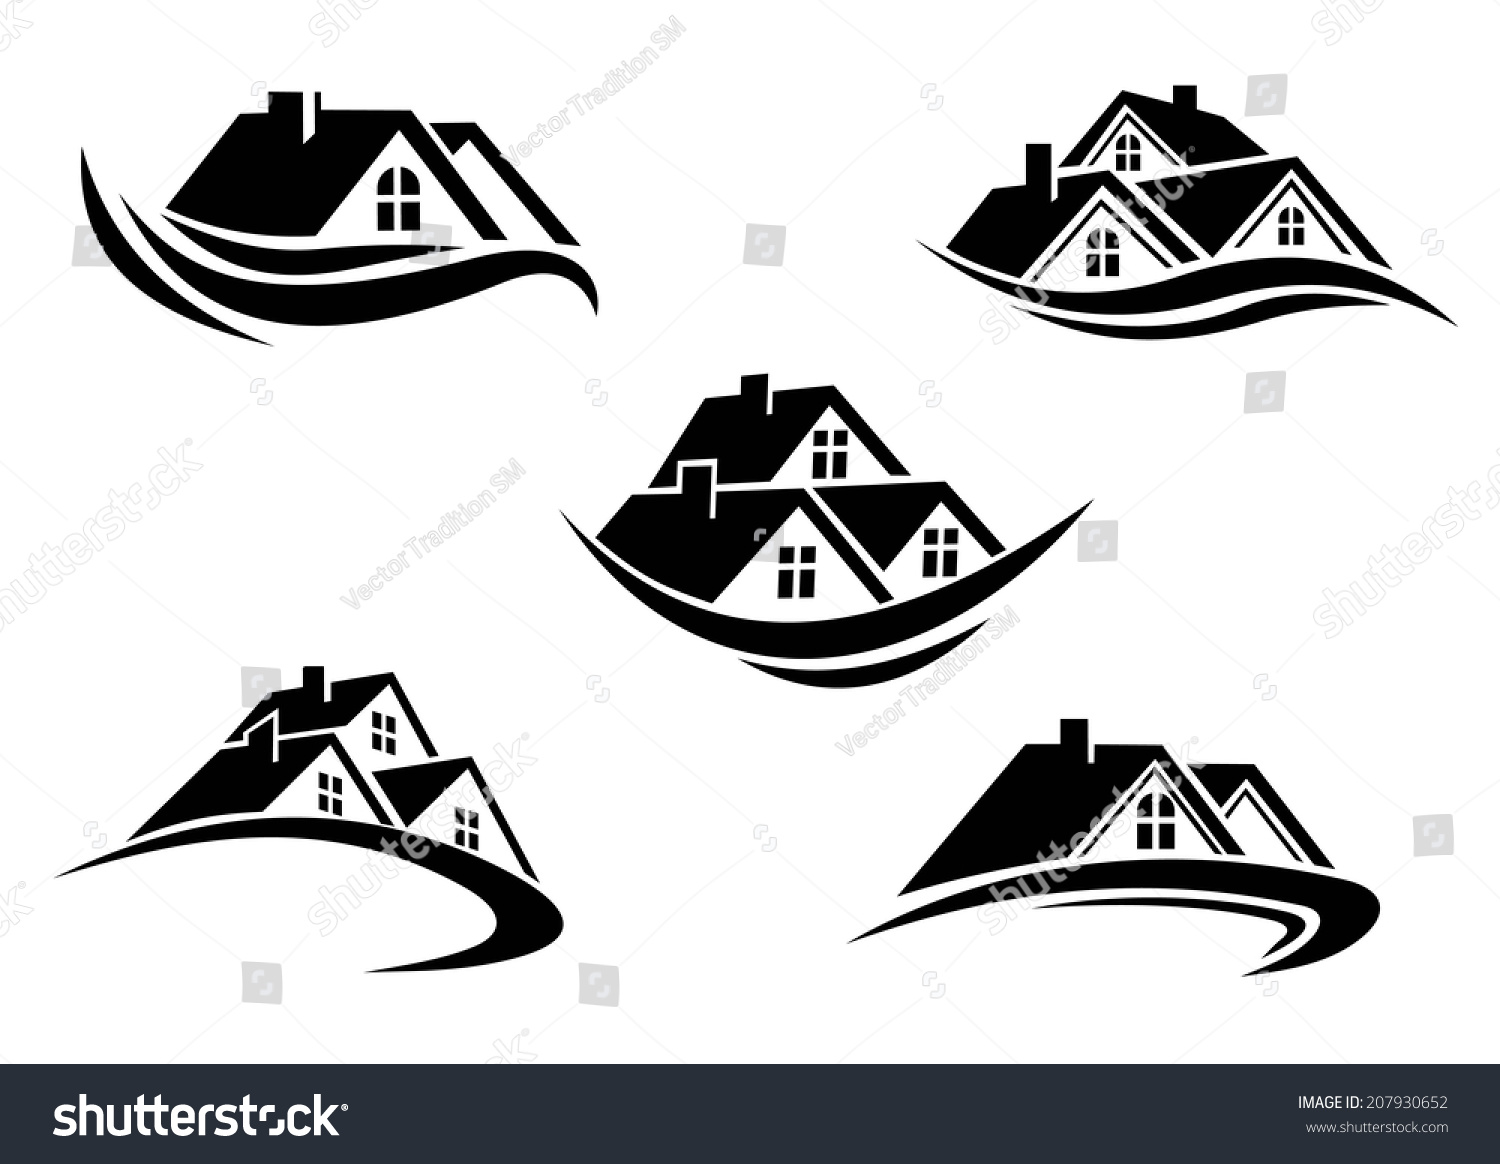 Black and white roof of houses with swoosh is the symbol for Clipart estate